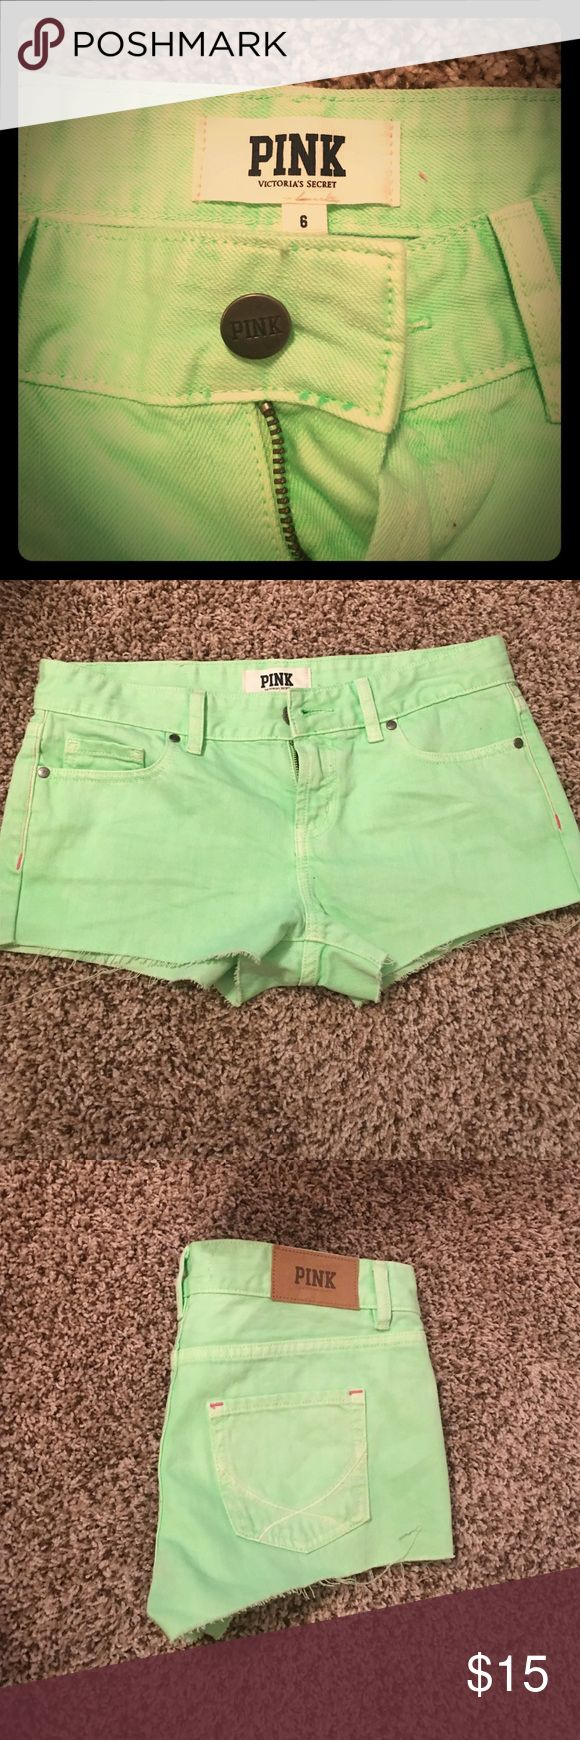 PINK denim shorts Neon green shorts by VS PINK. Hot pink and white details with distressed hems. Never worn! PINK Victoria's Secret Shorts Jean Shorts